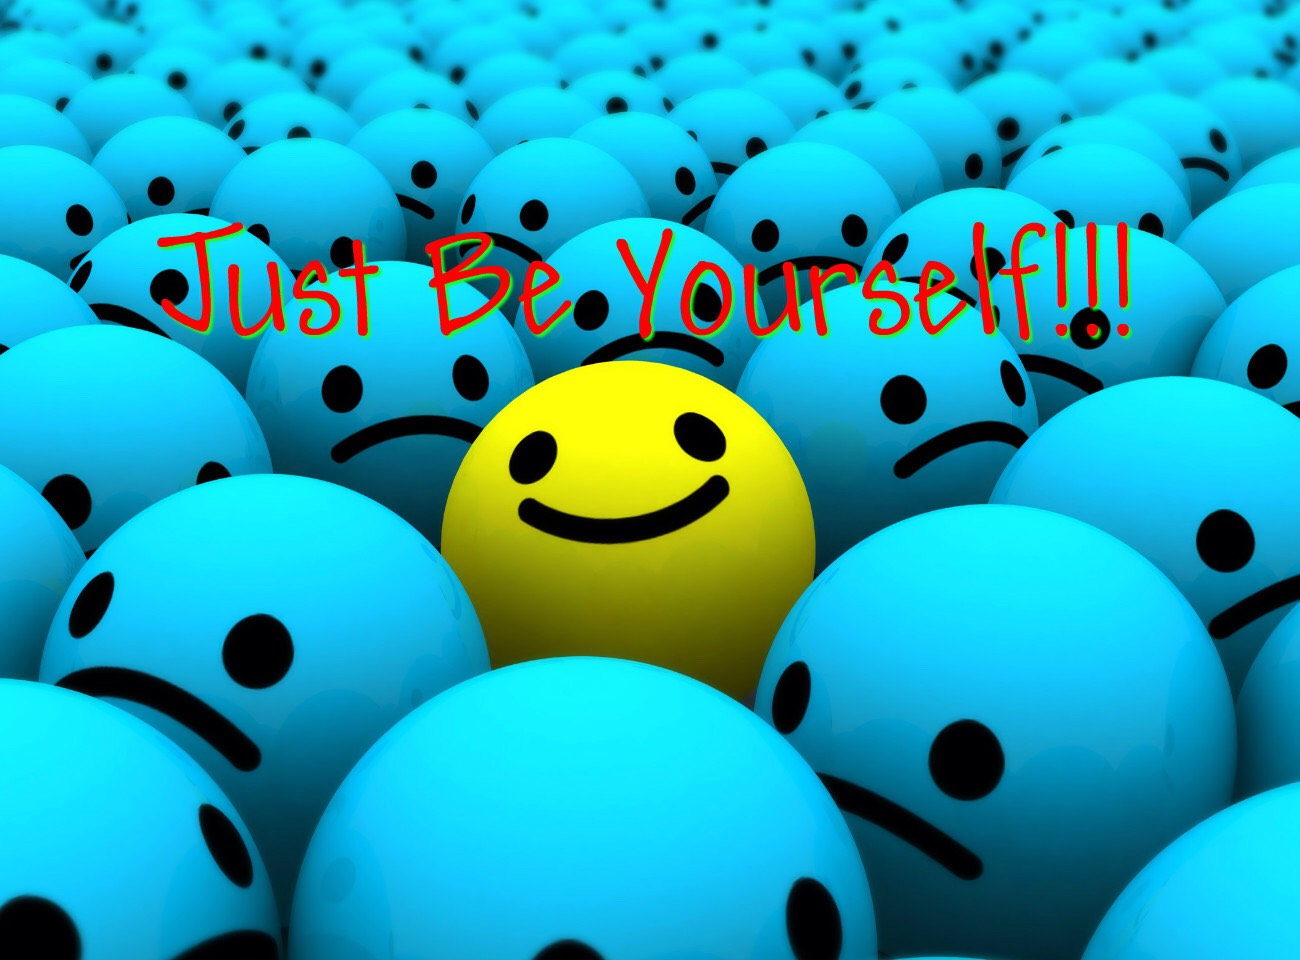 Be yourself!!!